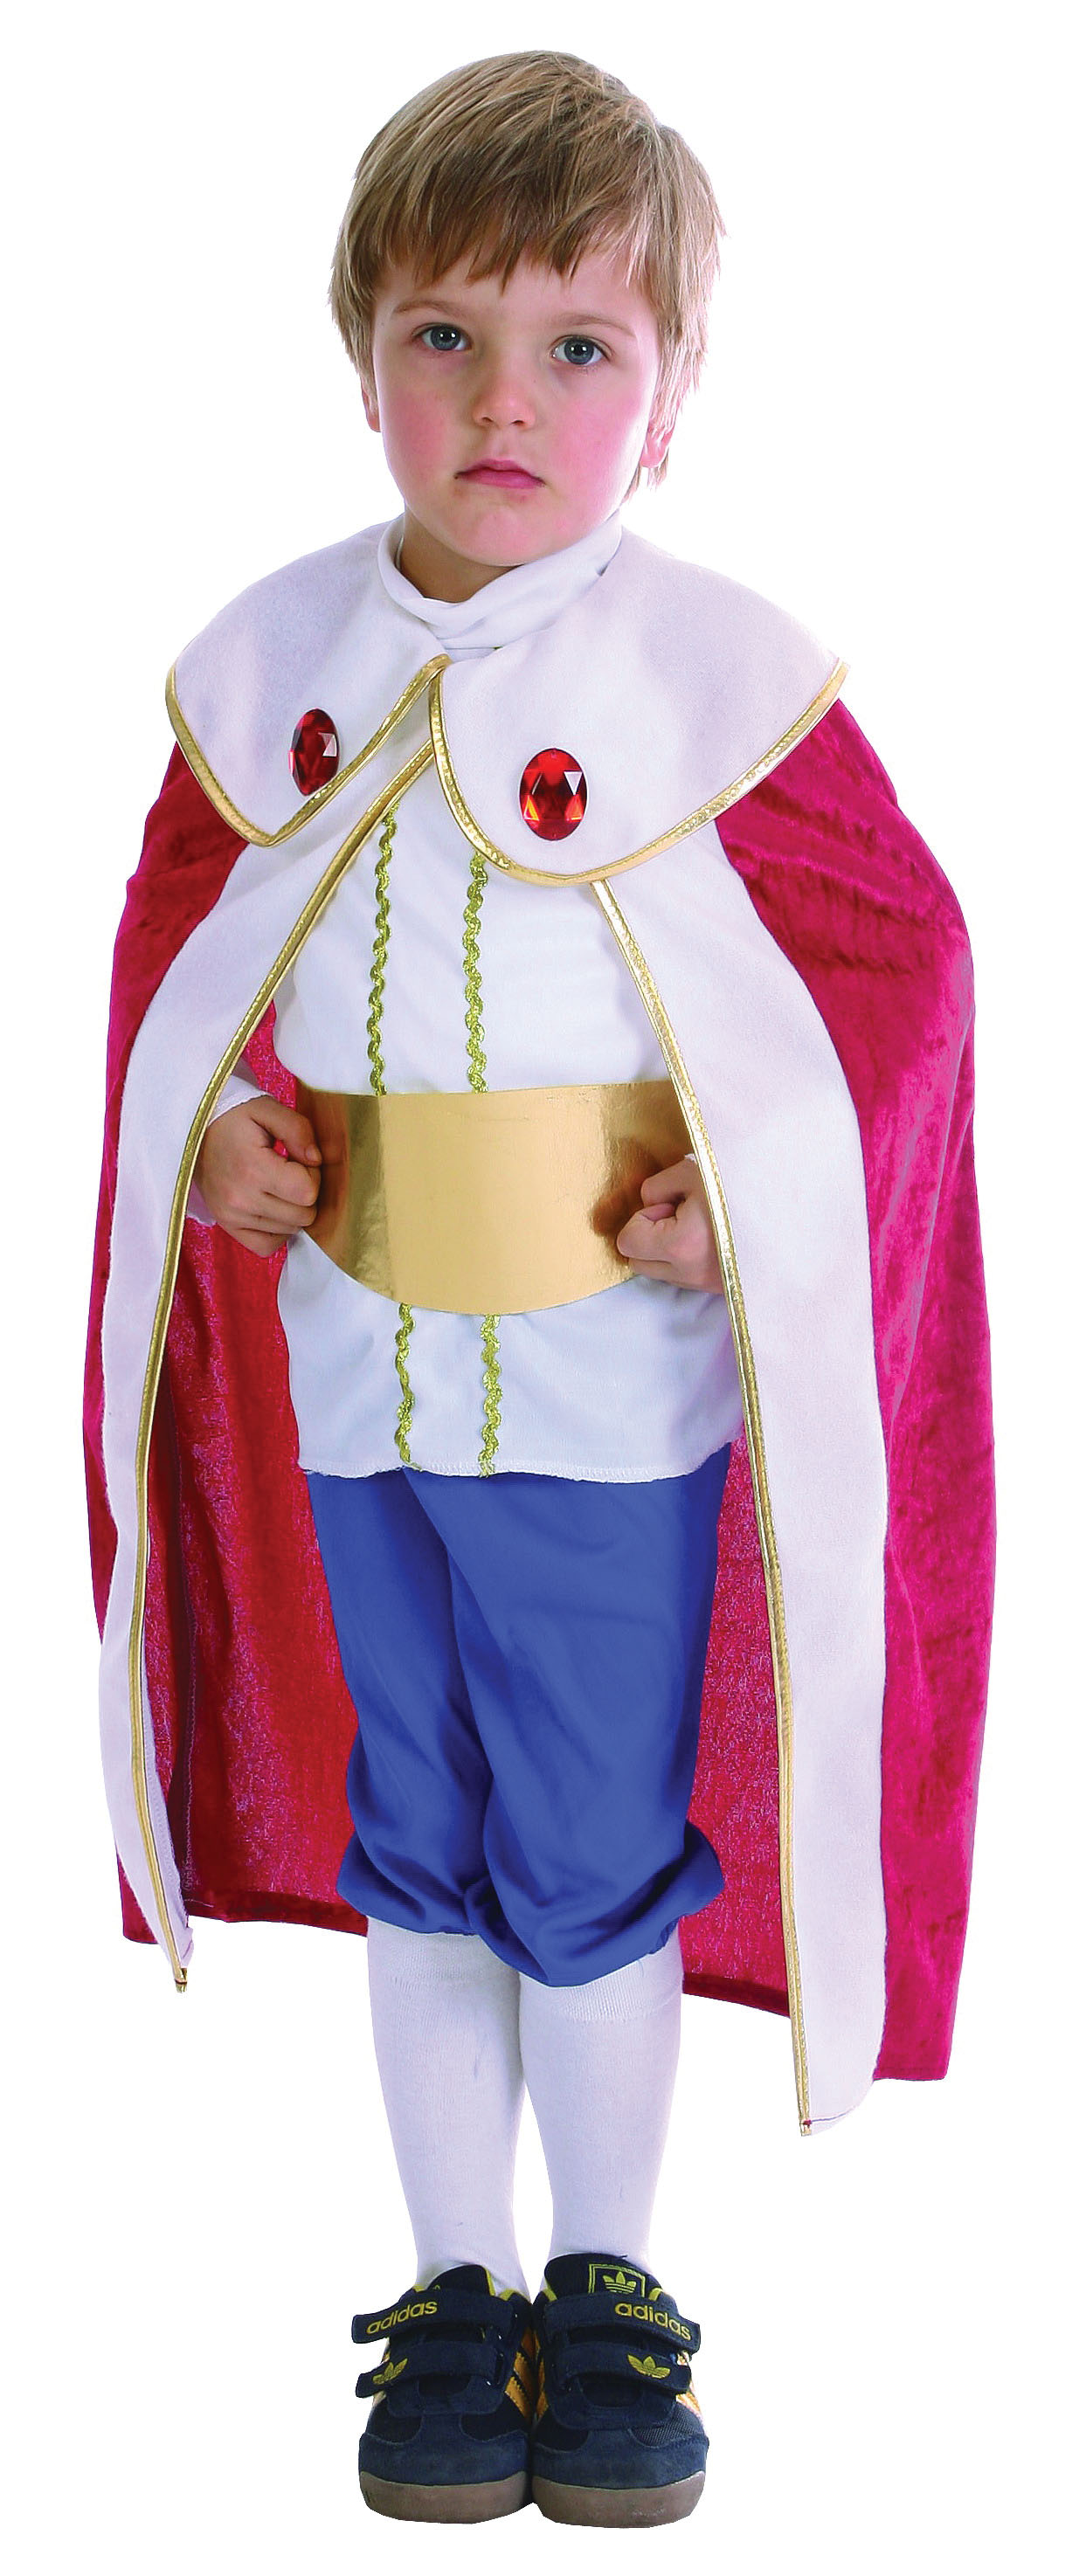 Toddler King Costume  sc 1 st  Mega Fancy Dress & Toddler King Costume | Kids Christmas Costumes | Mega Fancy Dress